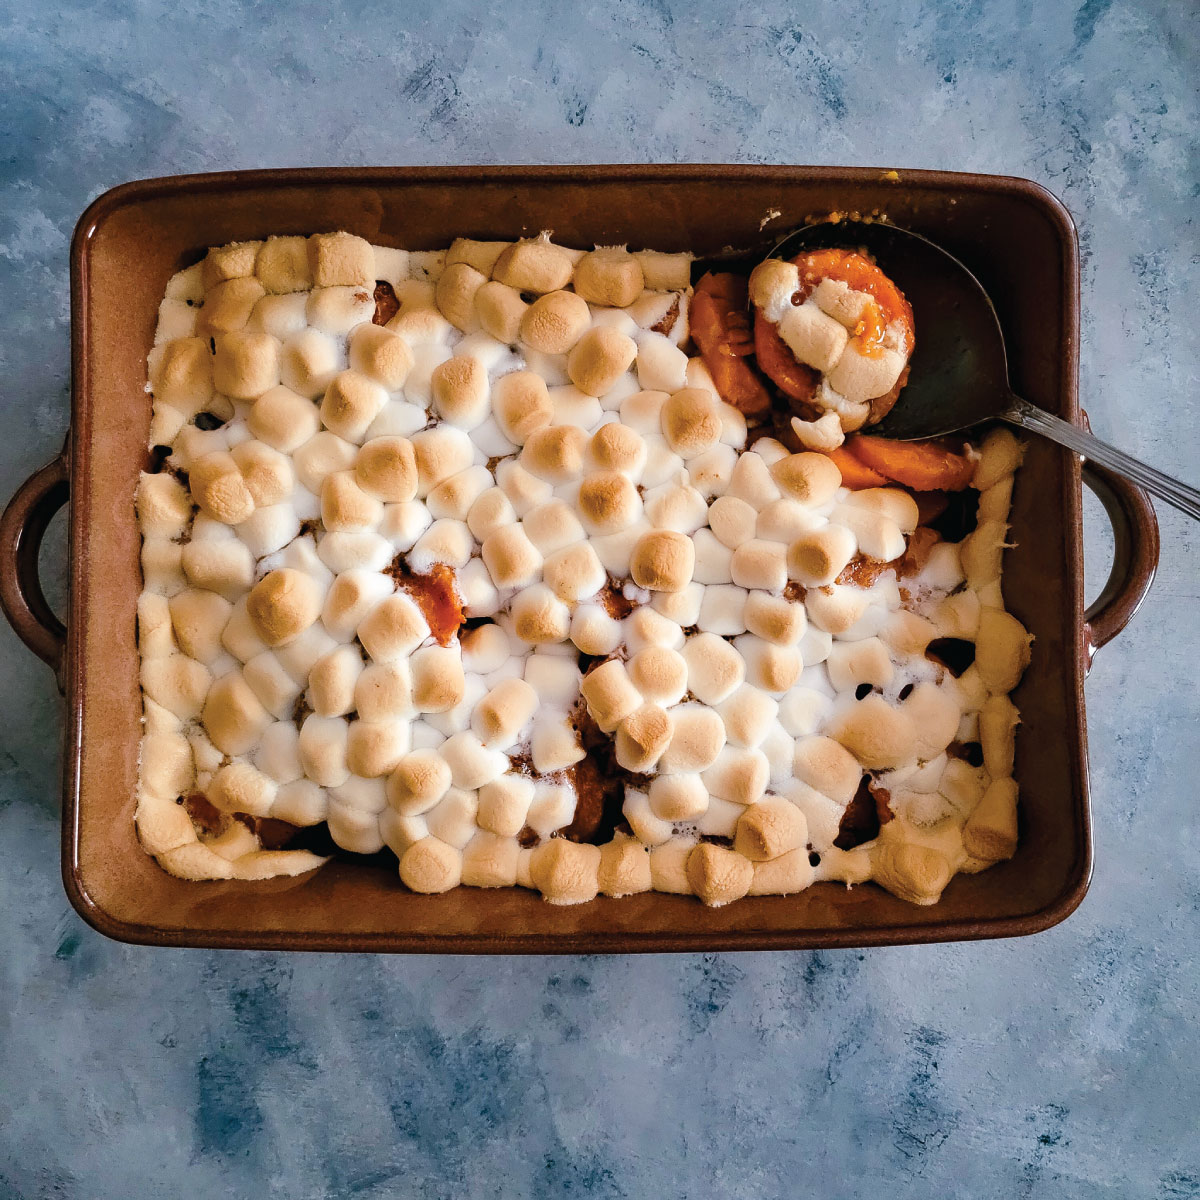 Sweet potato casserole in the baking dish after baking with a golden marshmallow top.